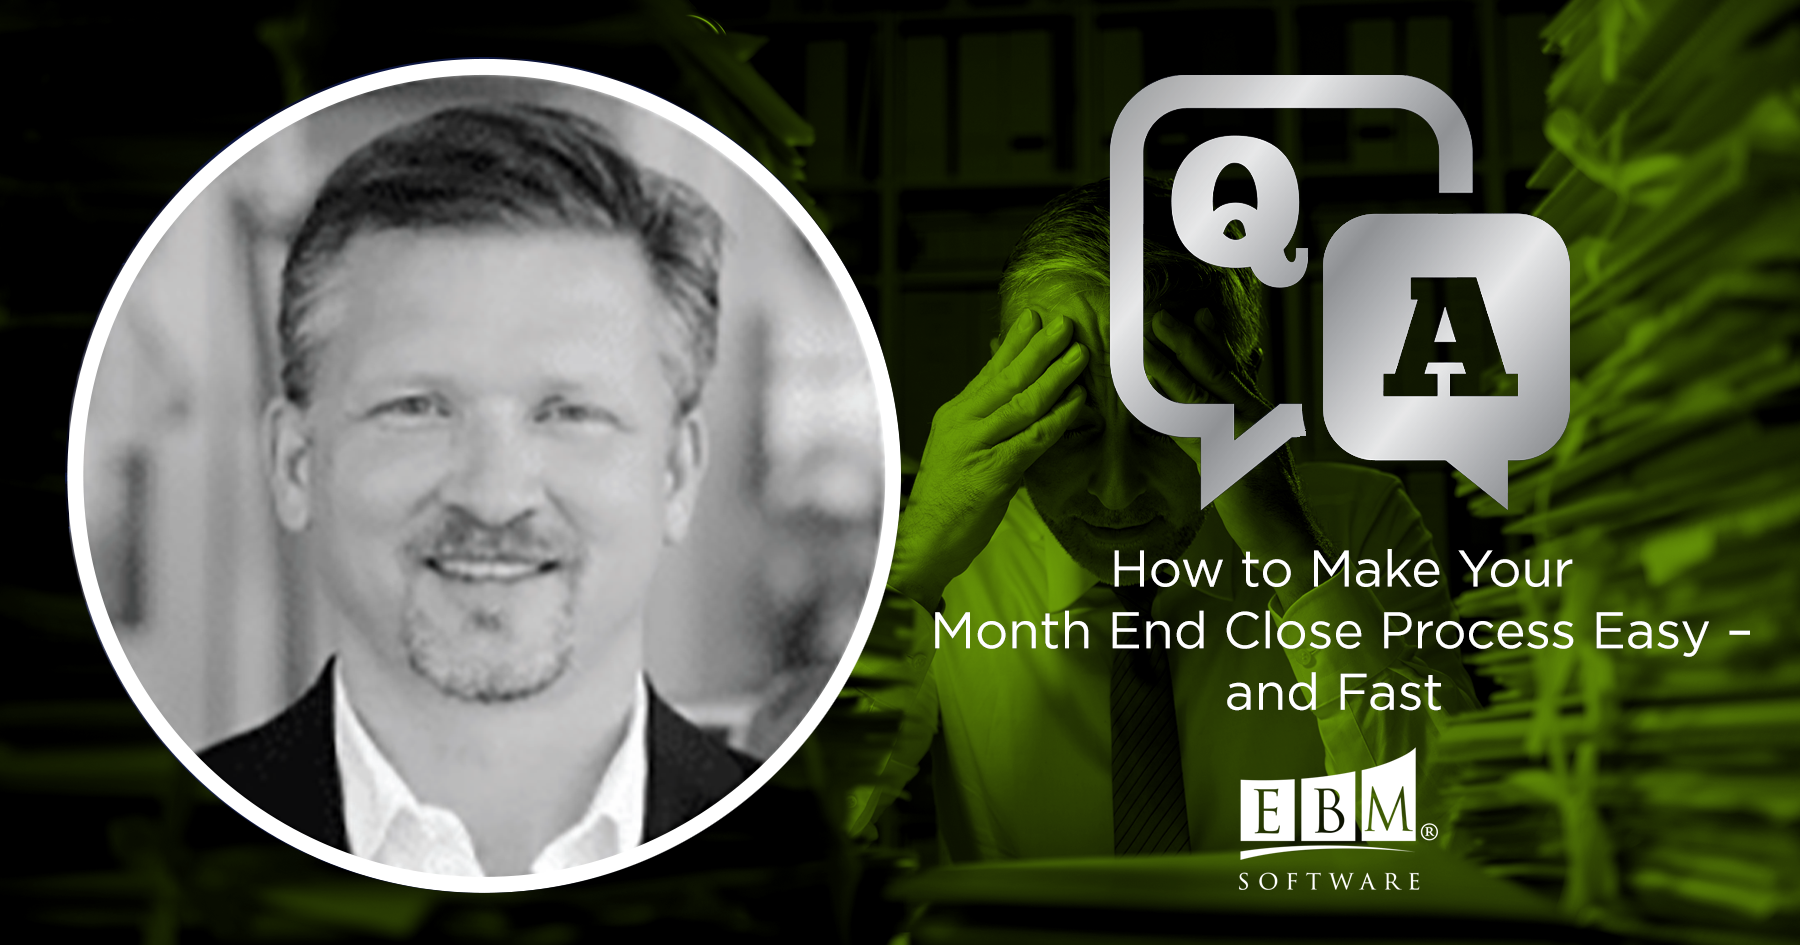 Making month end report close process easy and fast with Mike Skillingstad